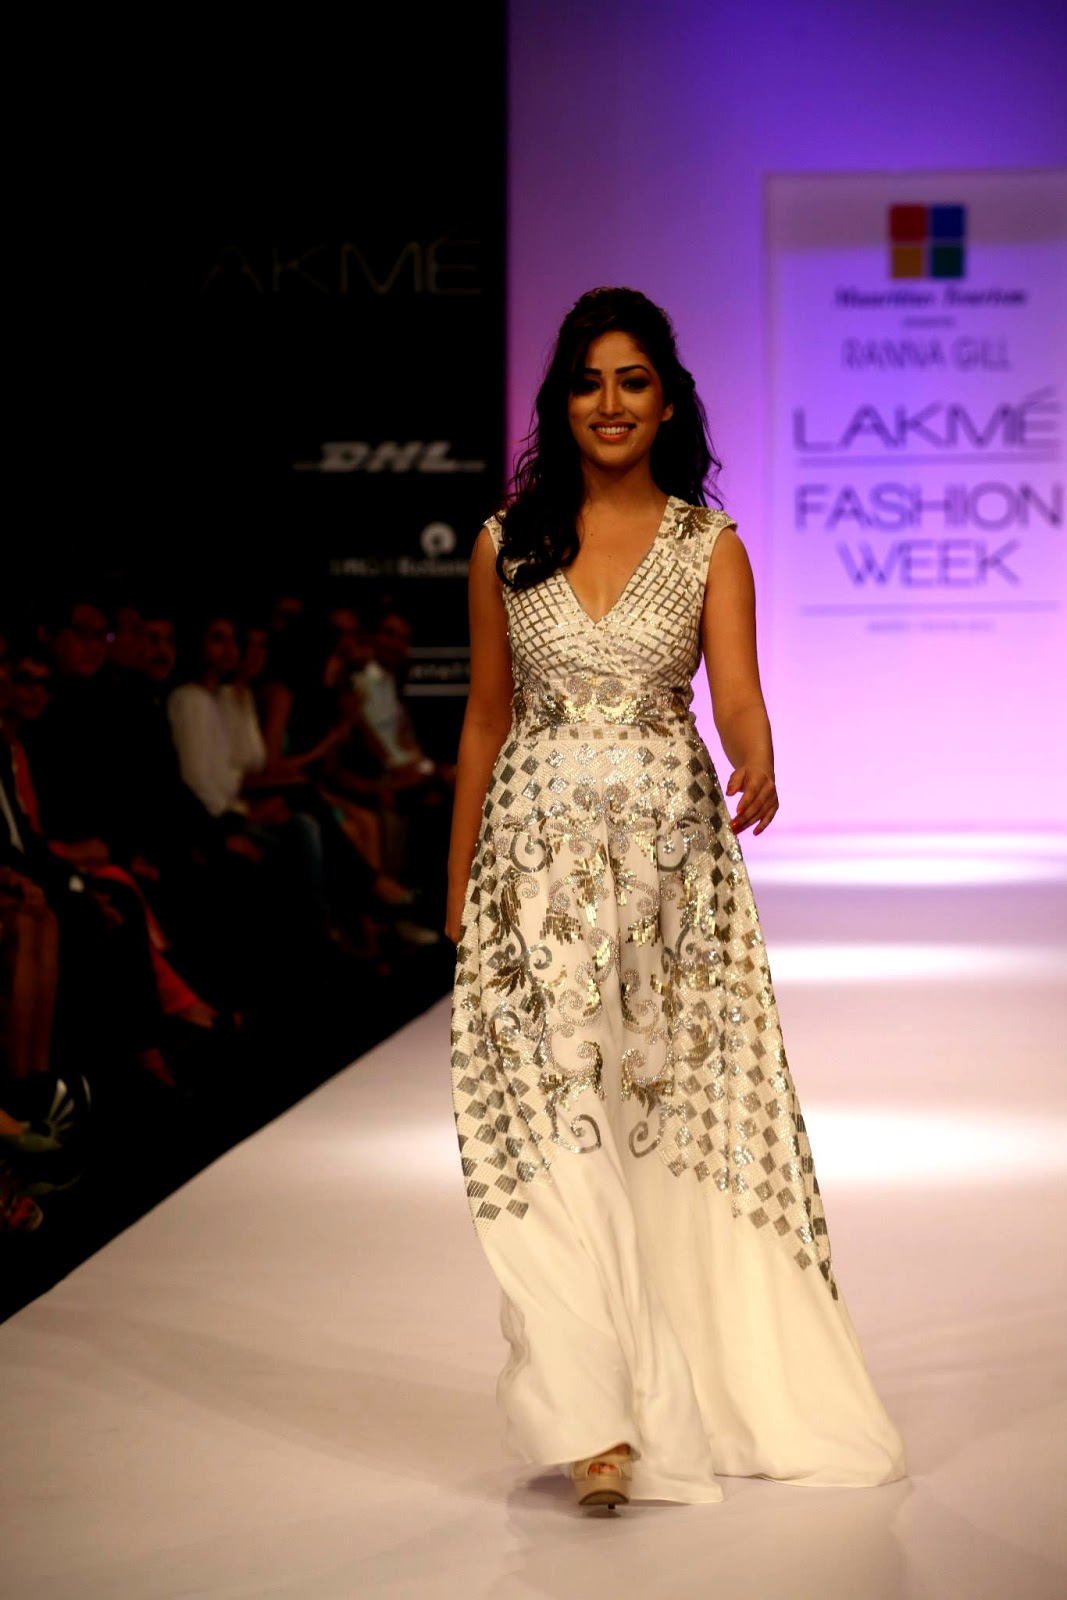 Ranna gill collection by mauritius tourism lakme fashion week winter festive 2013 day 1 Fashion style group mauritius